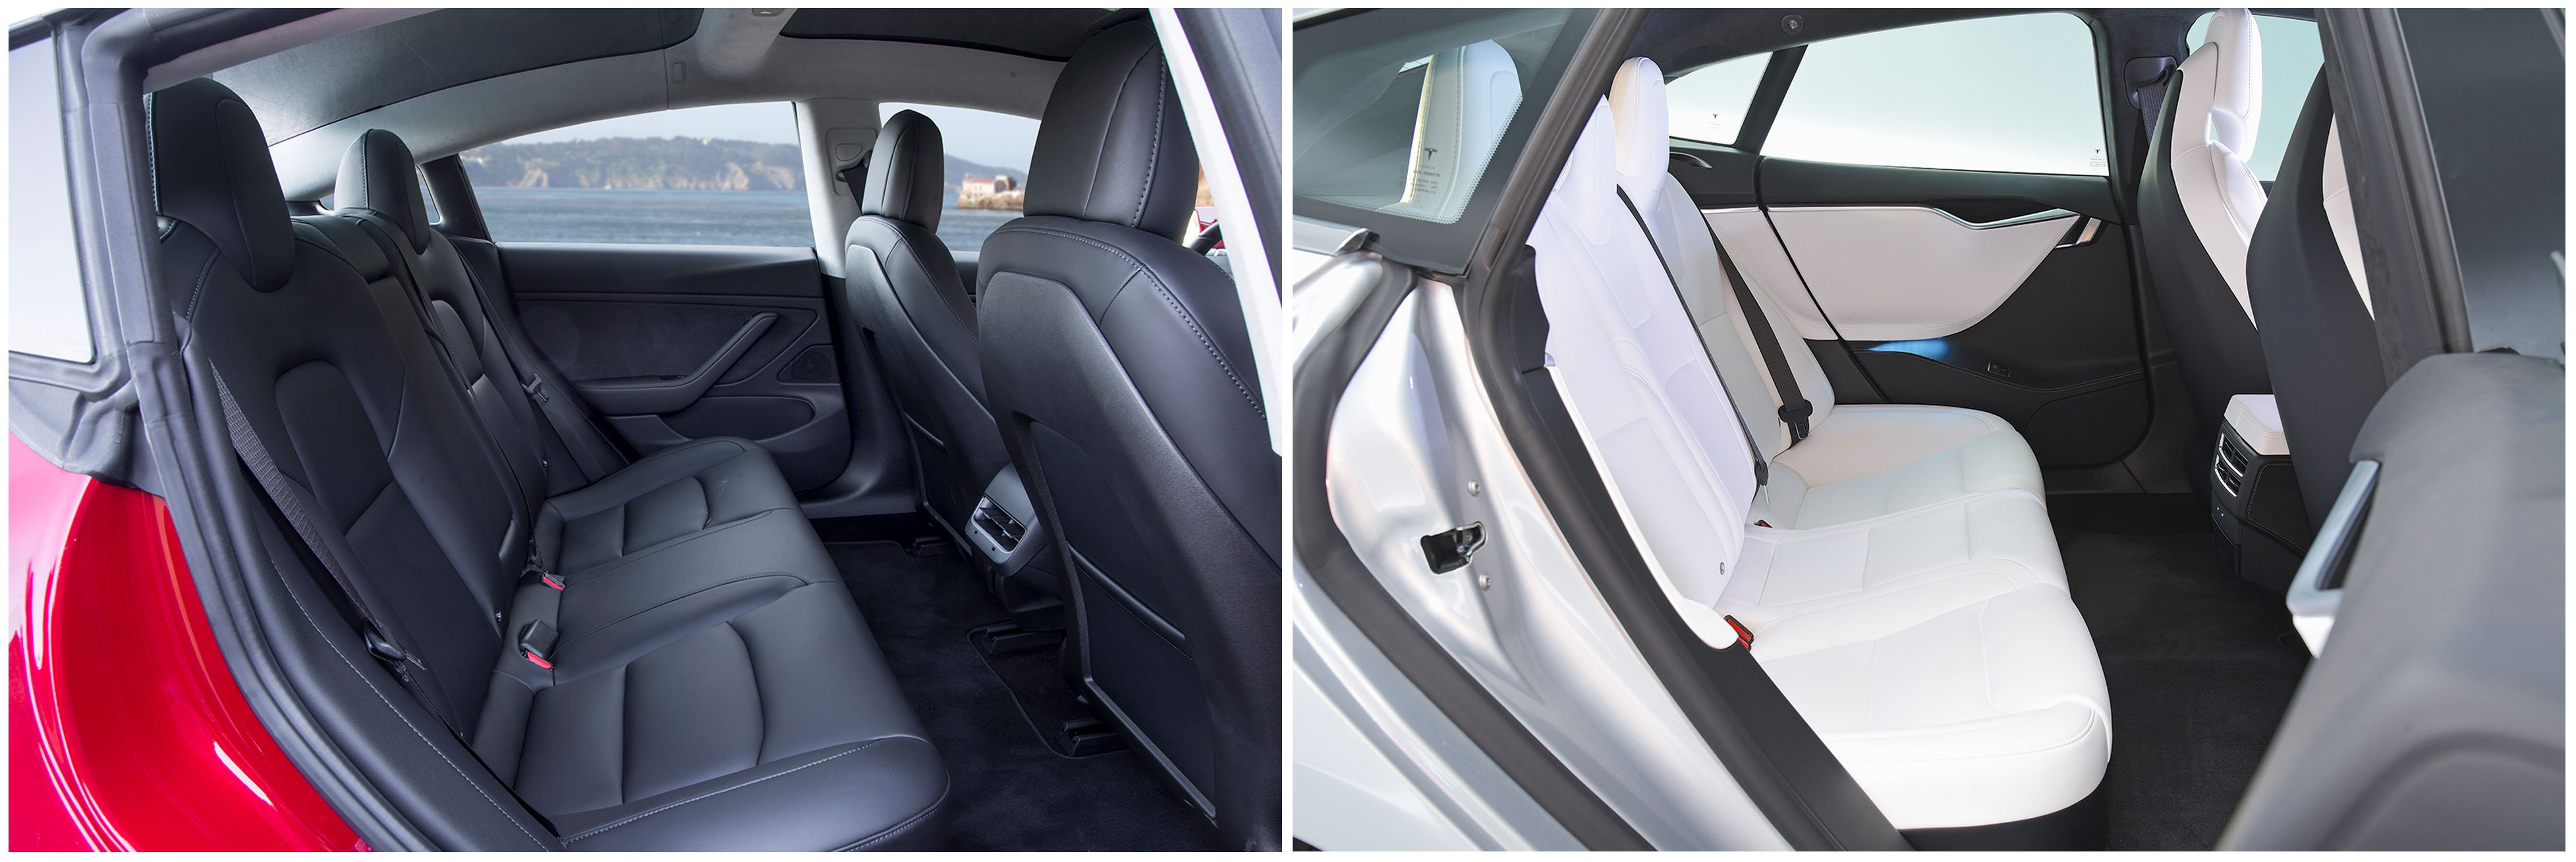 Tesla Model 3 and Tesla Model S rear seats